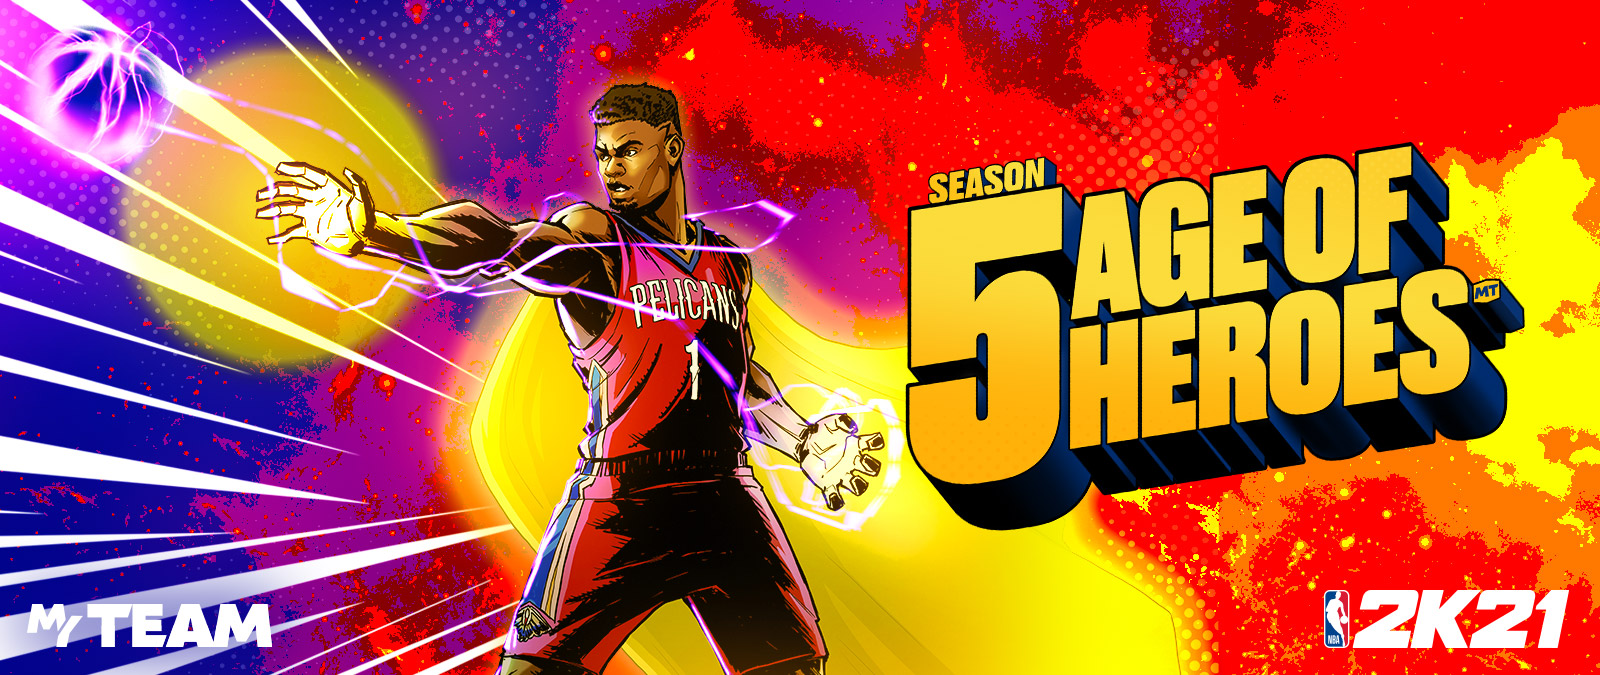 NBA 2k21, Season 5: Age of Heroes MT, My Team. Zion Williamson drawn in a cartoon style with electricity in his hands and around him shooting out an electric basketball.